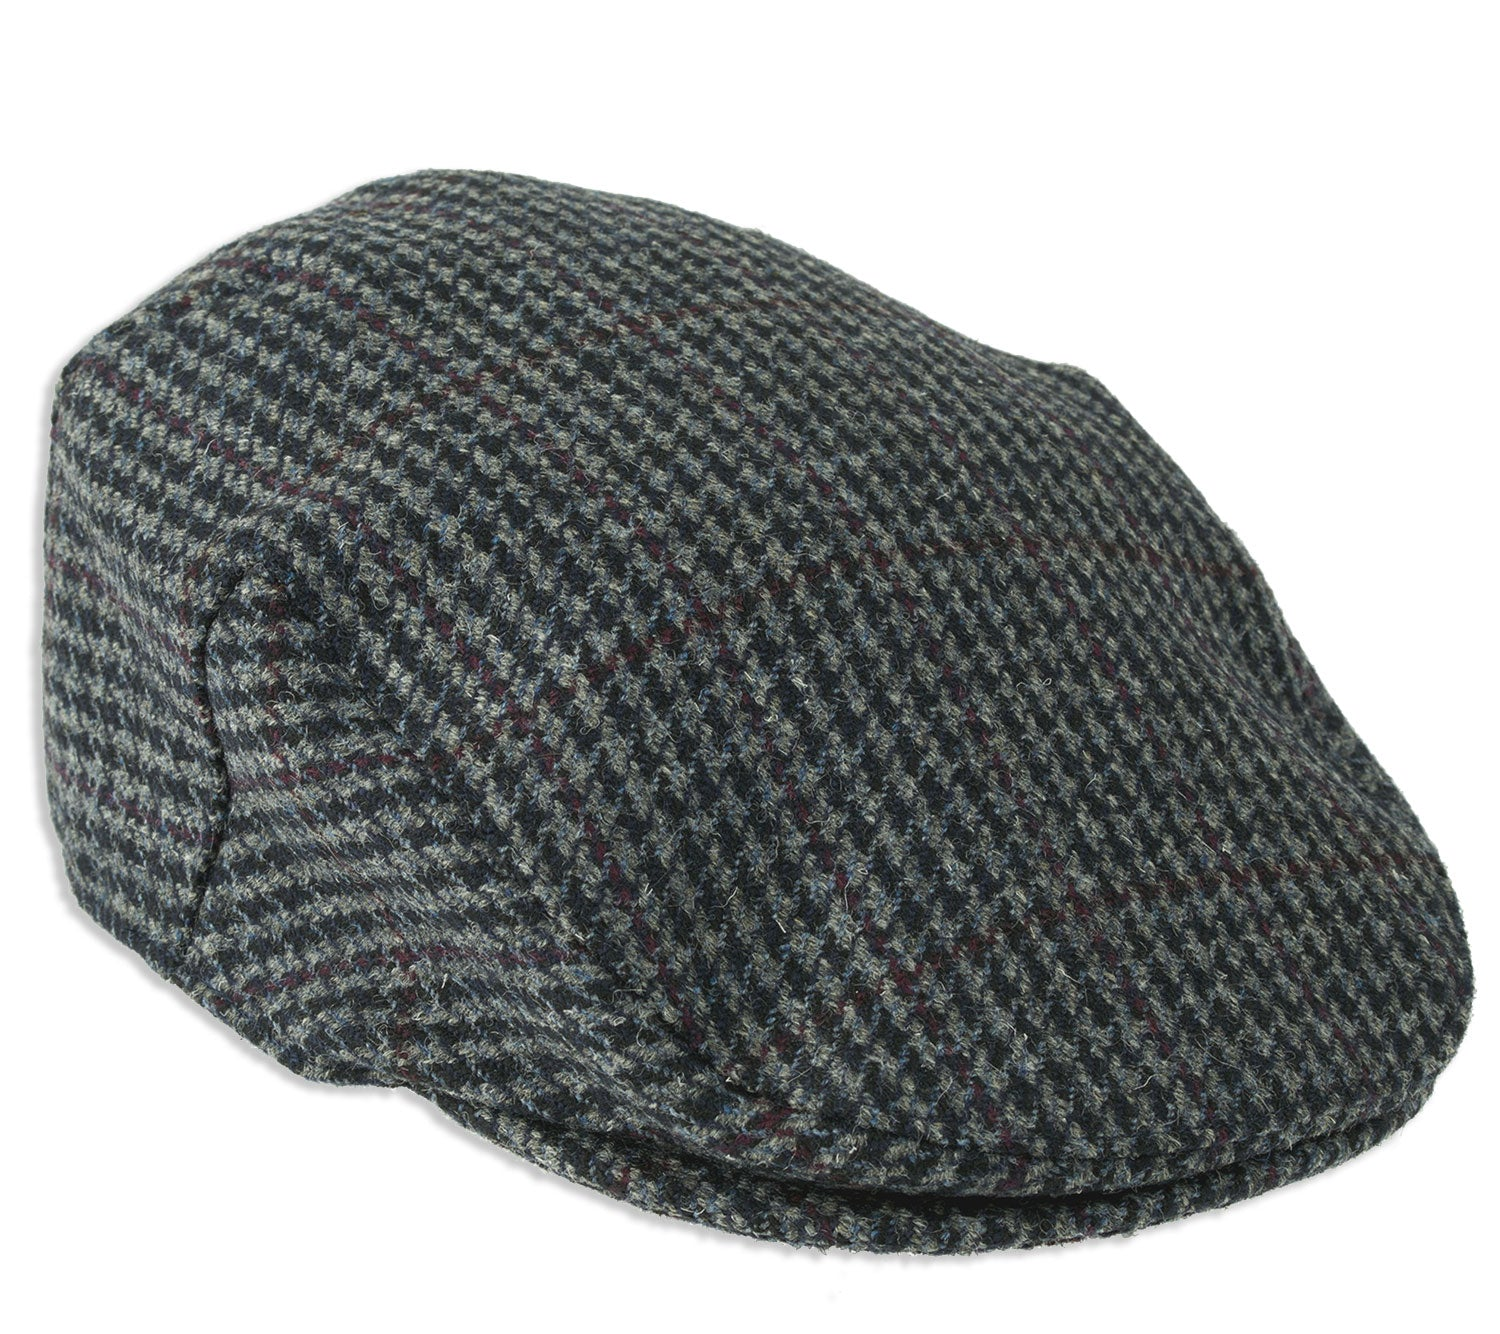 Shshetland Wool Kinloch Waterproof Tweed Flat Cap  by Heather Hats